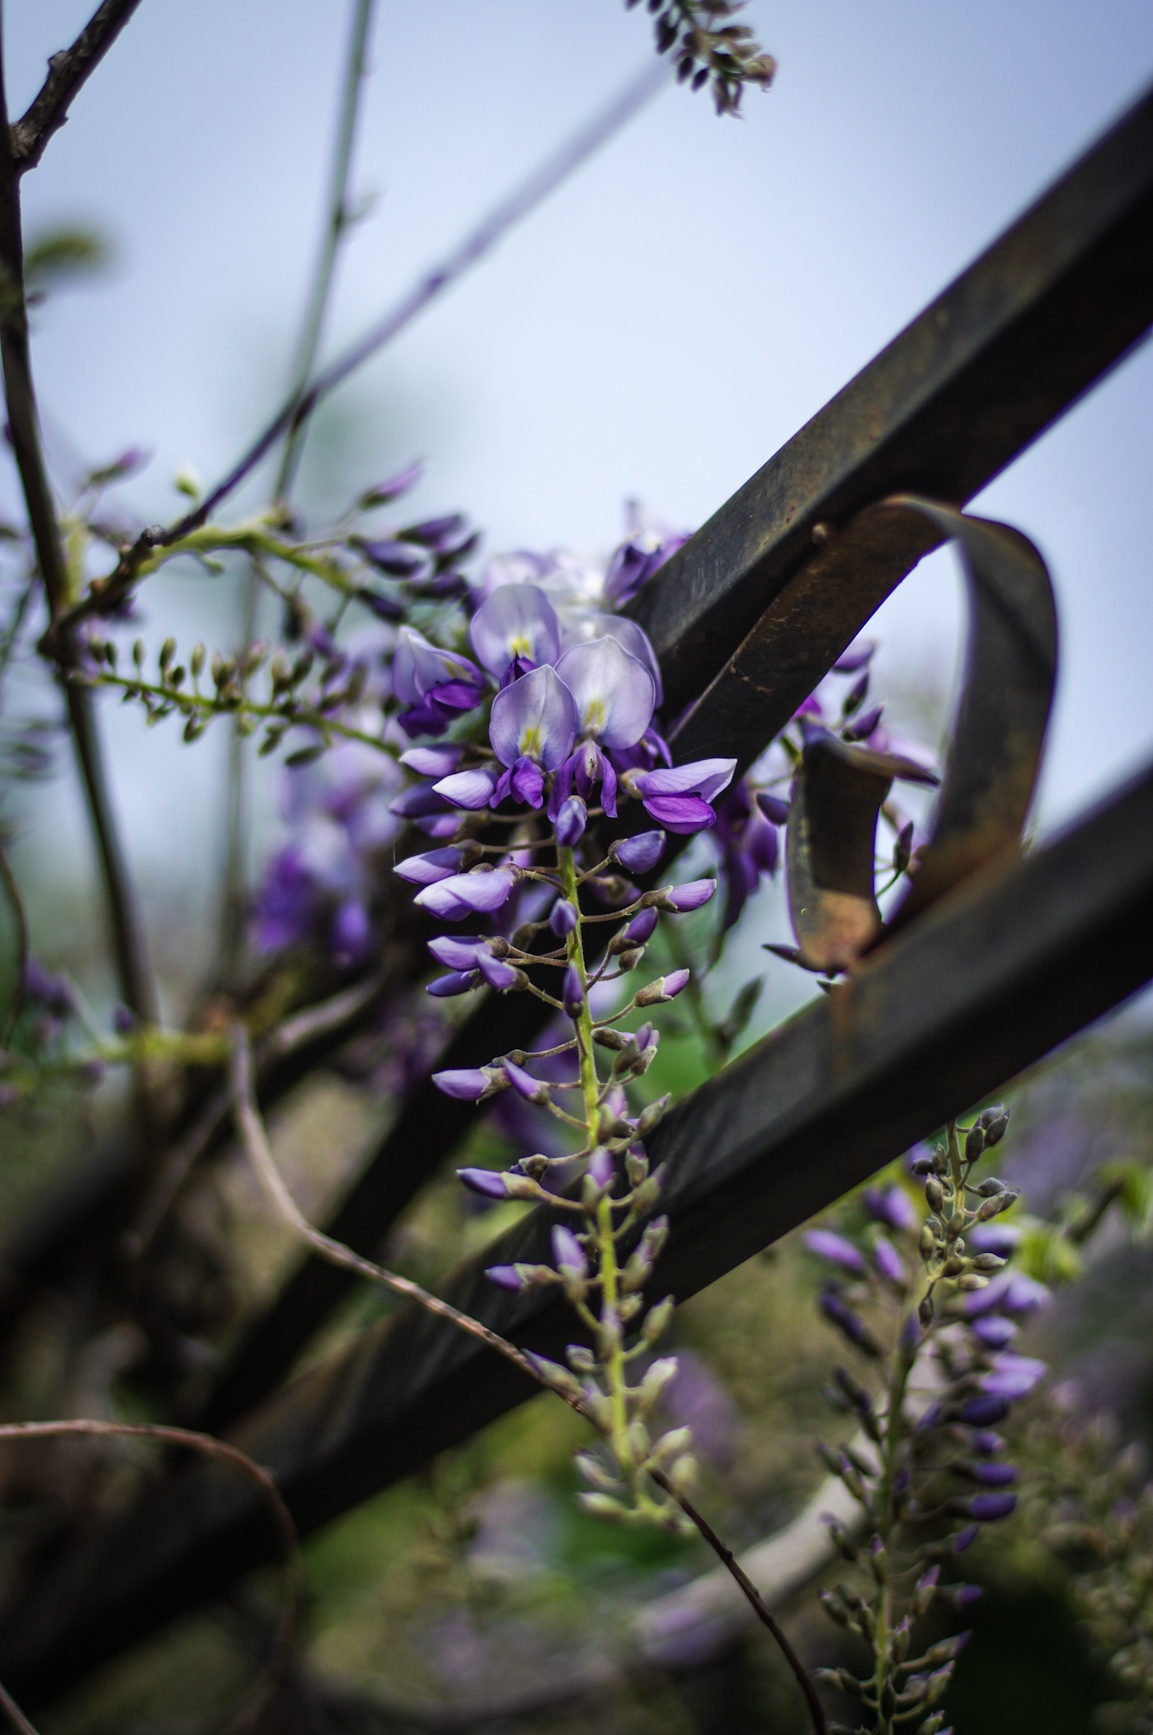 wisteria buds by Angelo Petrozza